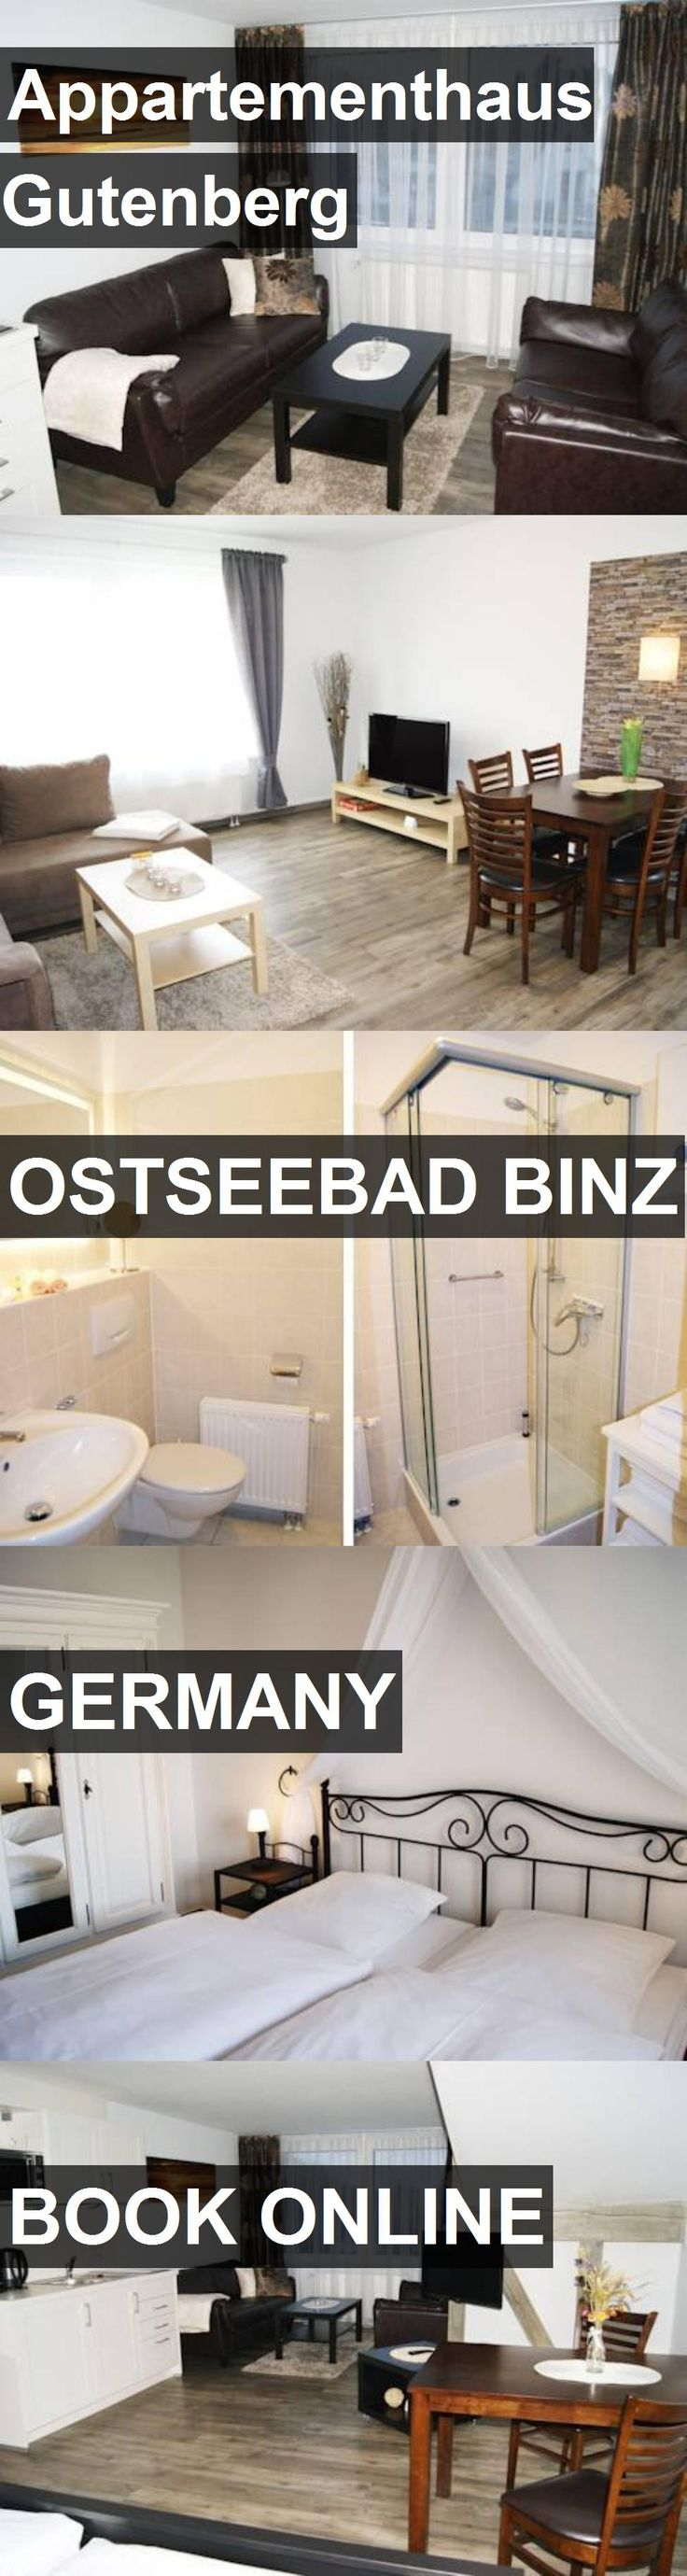 Hotel Appartementhaus Gutenberg in Ostseebad Binz, Germany. For more information, photos, reviews and best prices please follow the link. #Germany #OstseebadBinz #travel #vacation #hotel